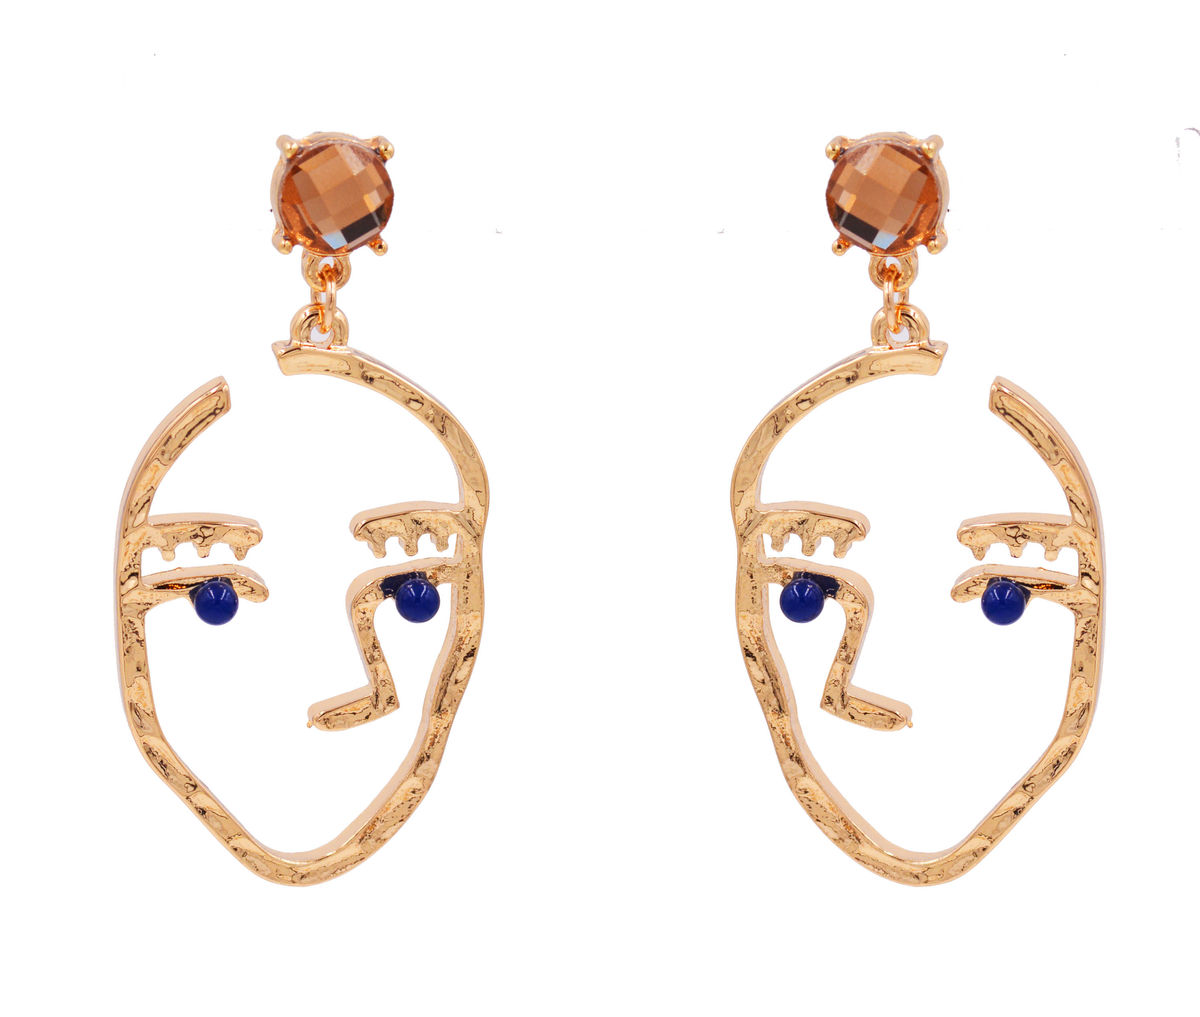 Gold Plated Cutout Human Face Drawing Style Drop Stud Earrings with Sapphire Blue Crystals - Cute Fun and Quirky Jewellery  - product images  of